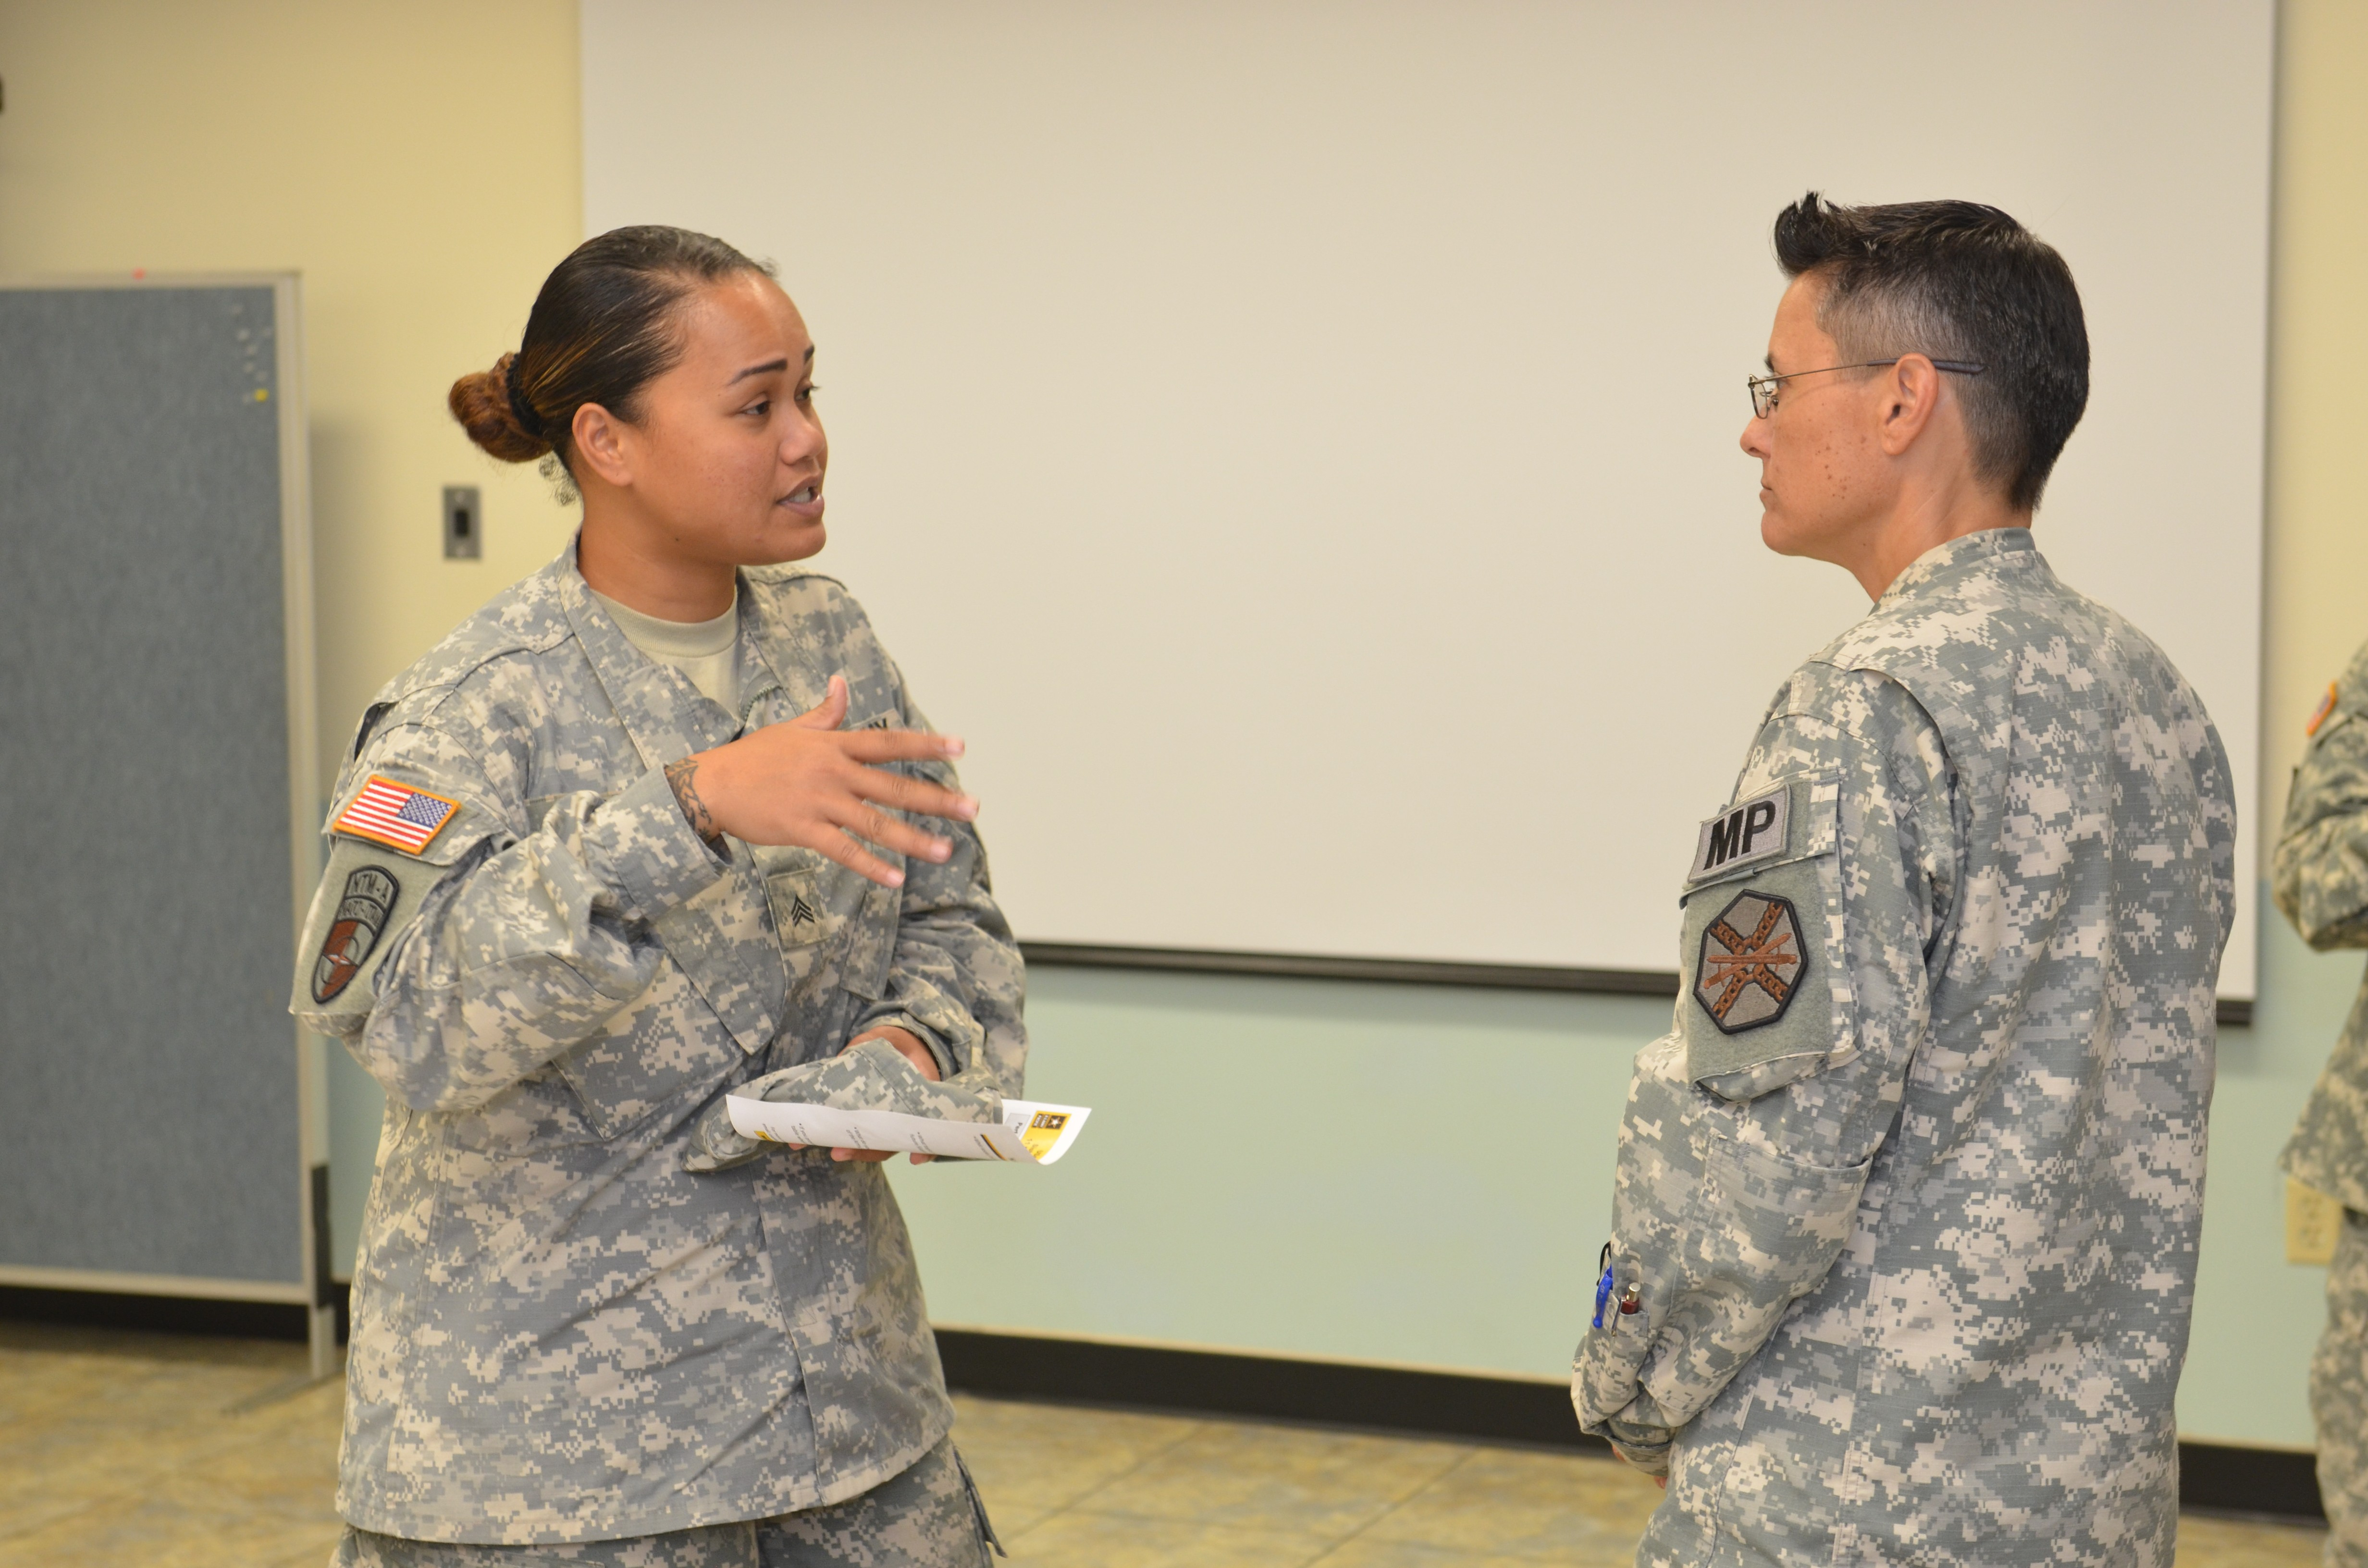 schofield barracks catholic single women But it wasn't until 1990 that the club began offering full memberships to women,  two catholic clergy members from the  schofield barracks will celebrate.